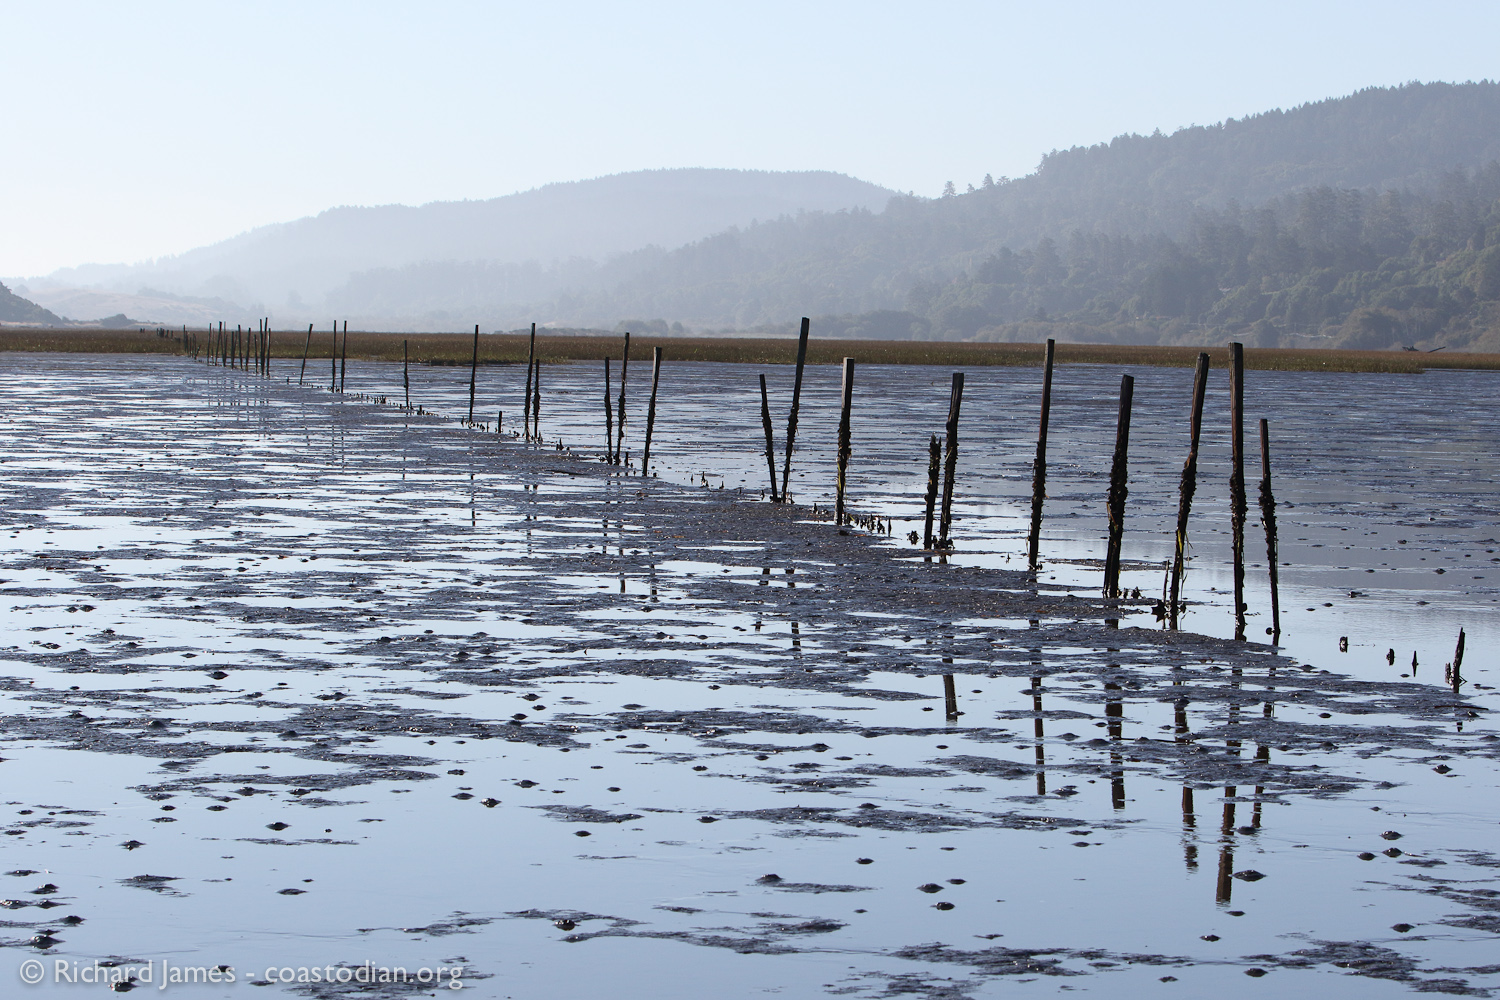 Century old bat-ray fence abandoned long ago, now causing sedimentation in the southern bay as well as providing hard substrate for the invasive oyster drill to colonize upon as well as lay many, many thousands of eggs. These oyster drills prey upon the threatened native Olympia Oyster